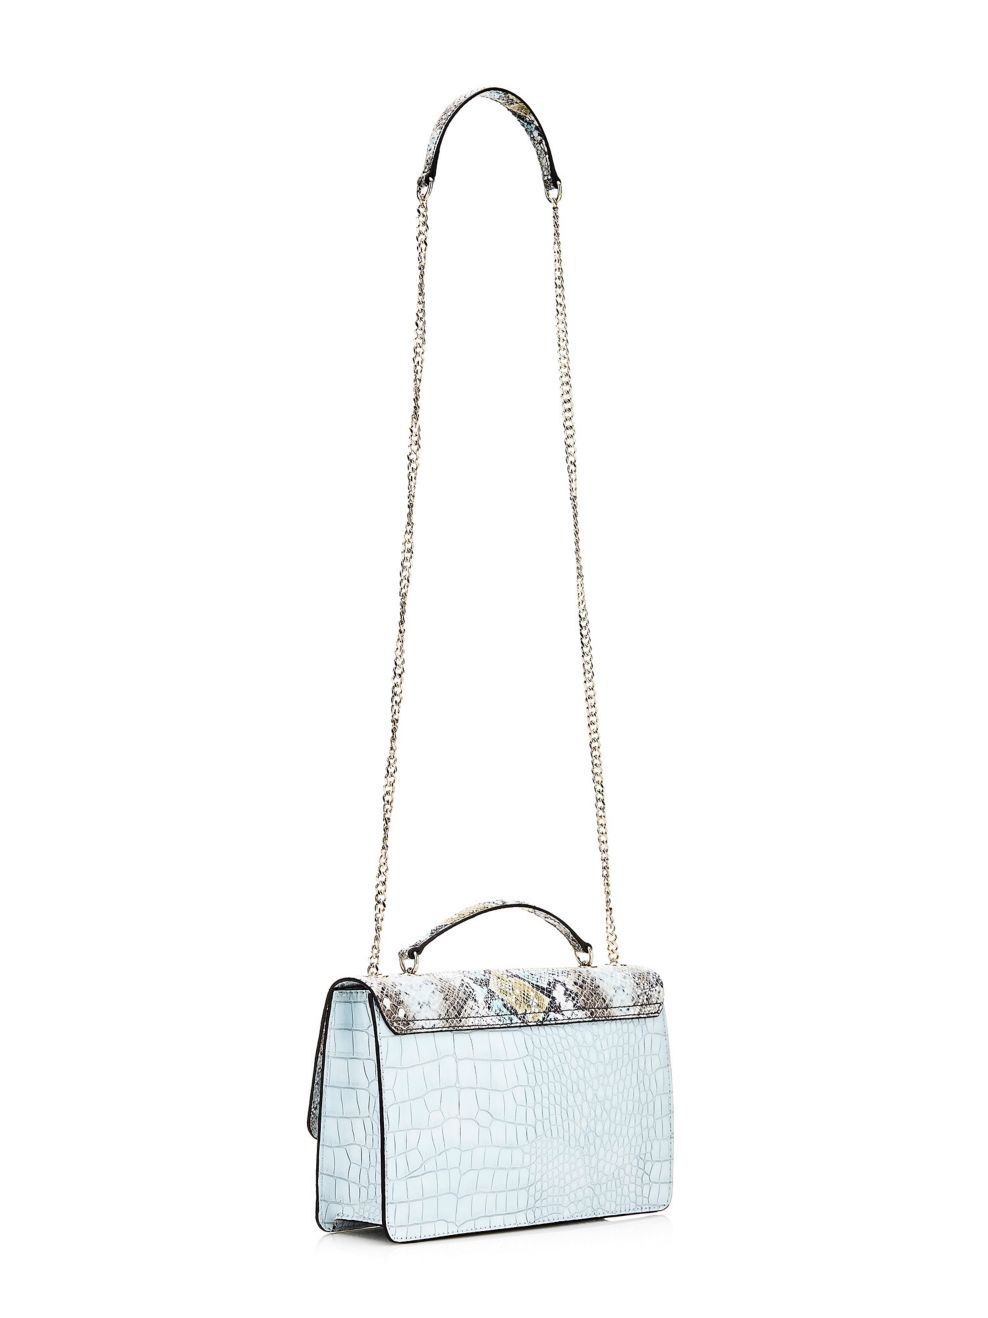 Guess Croco Effet A Sac Bandouliere Sacs Cate 6g7vYbyf